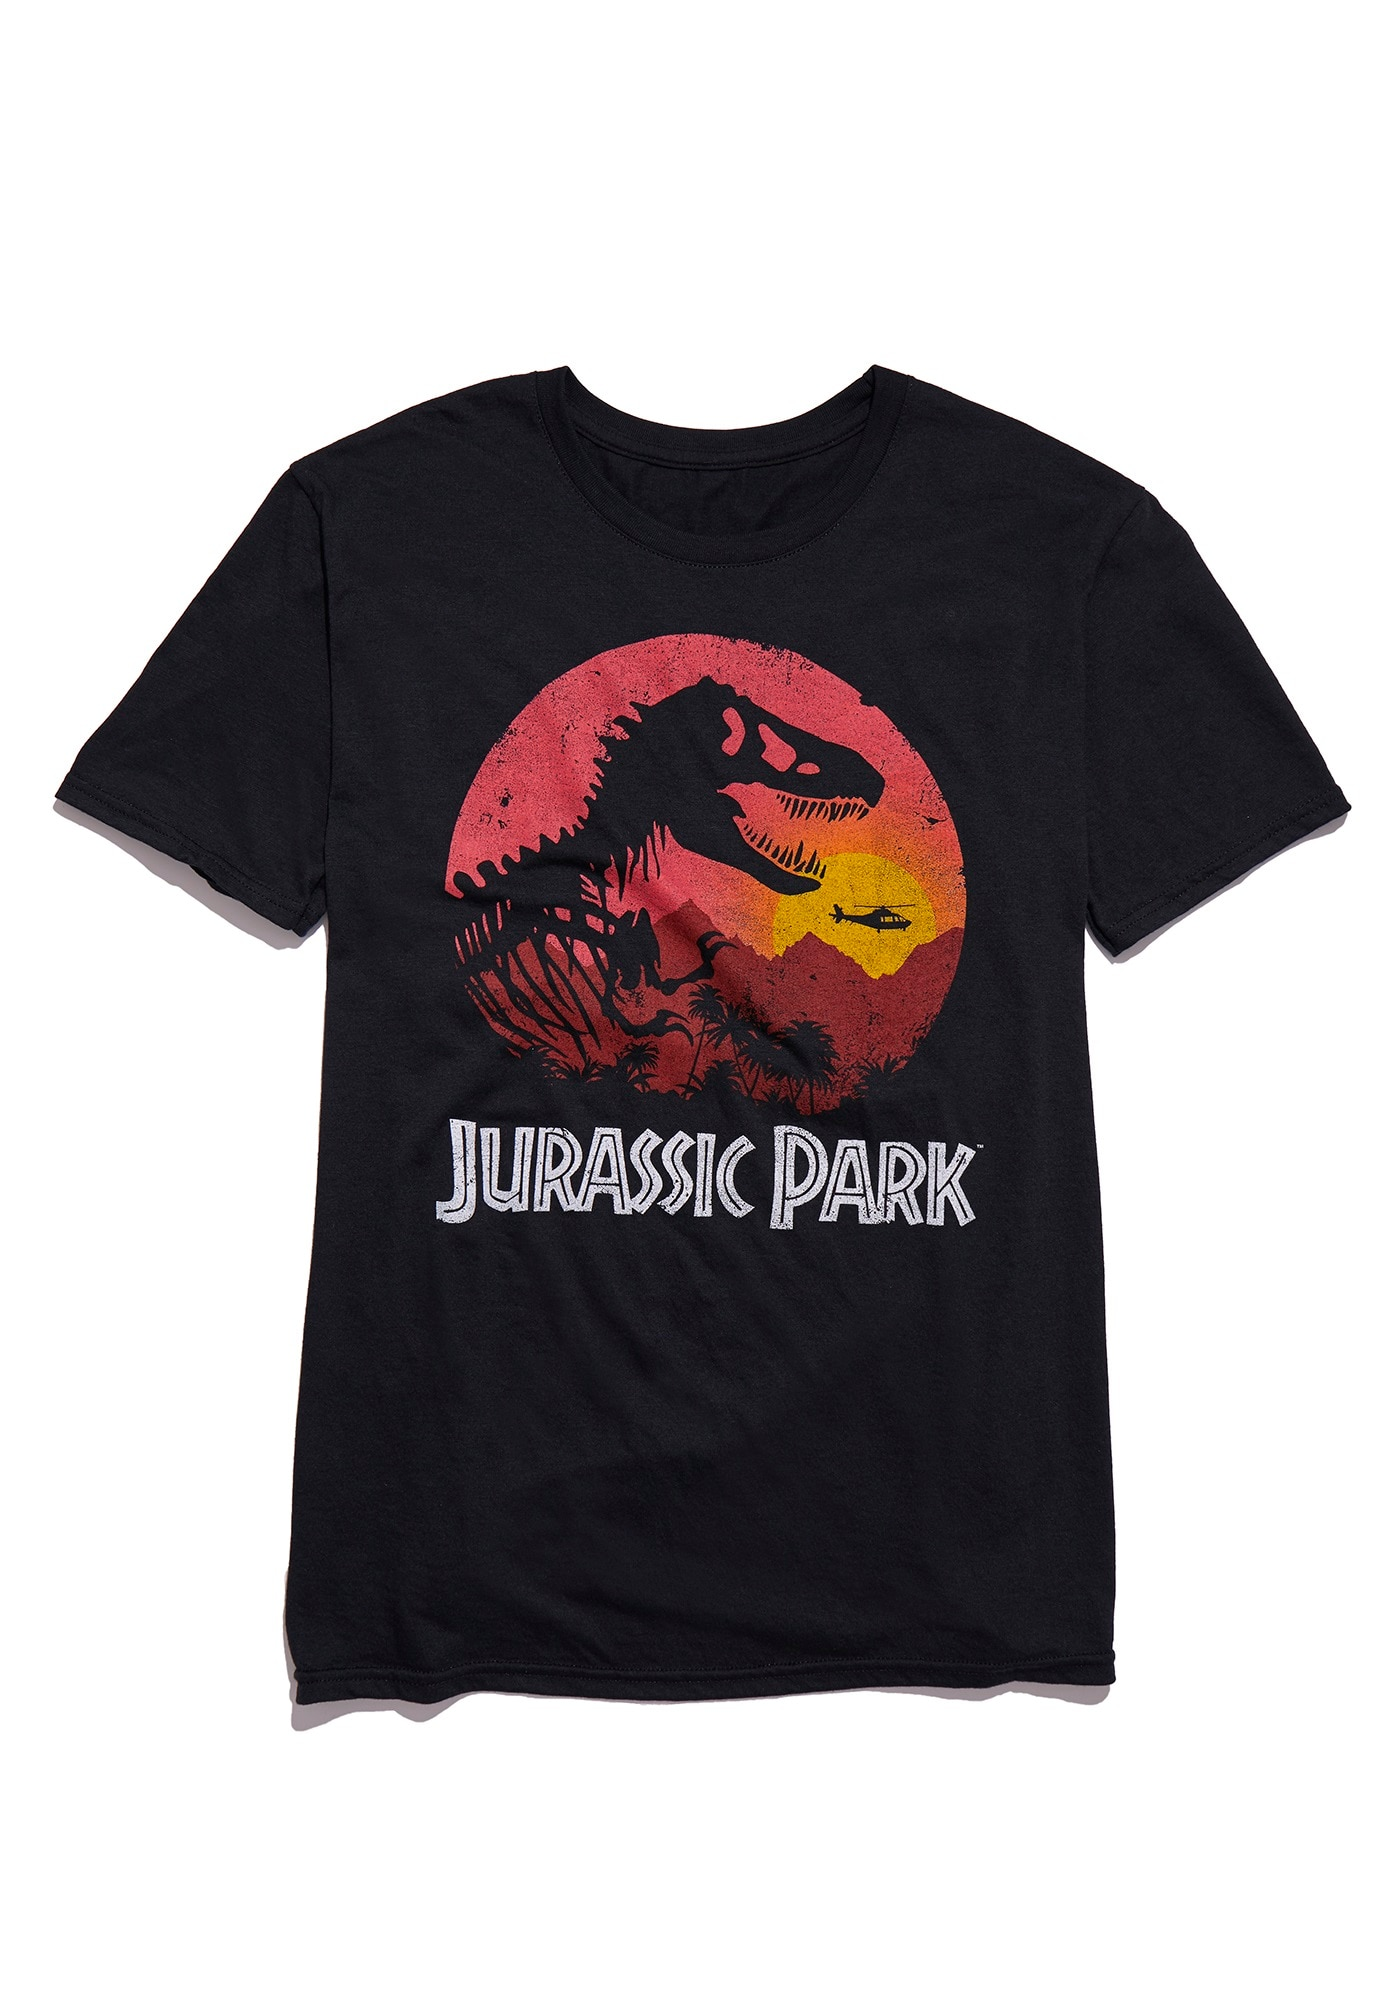 Jurassic Park Classic Tee - Exclusive: BoxLunch's JURASSIC WORLD Collection for Humans and Pets